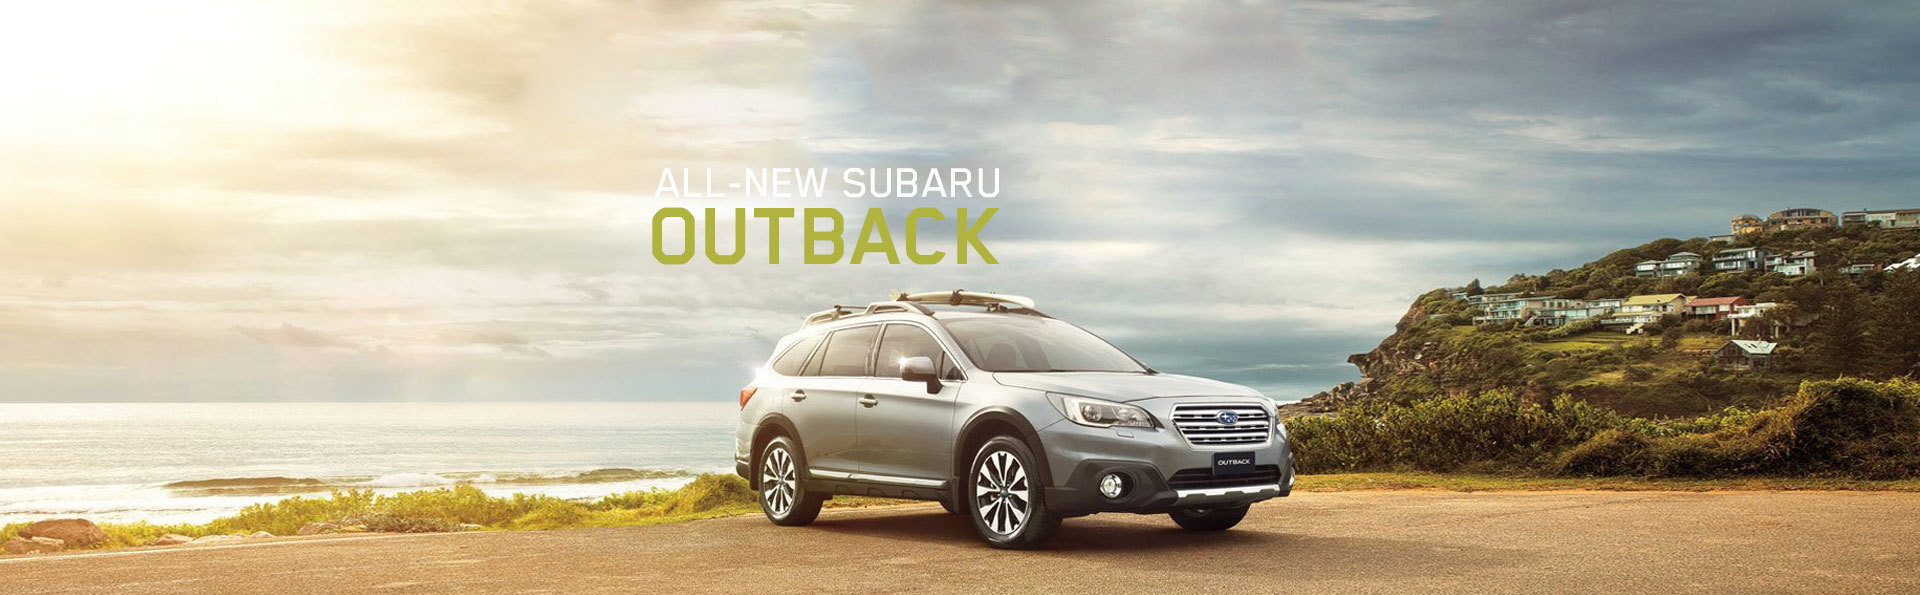 All-New Subaru Outback